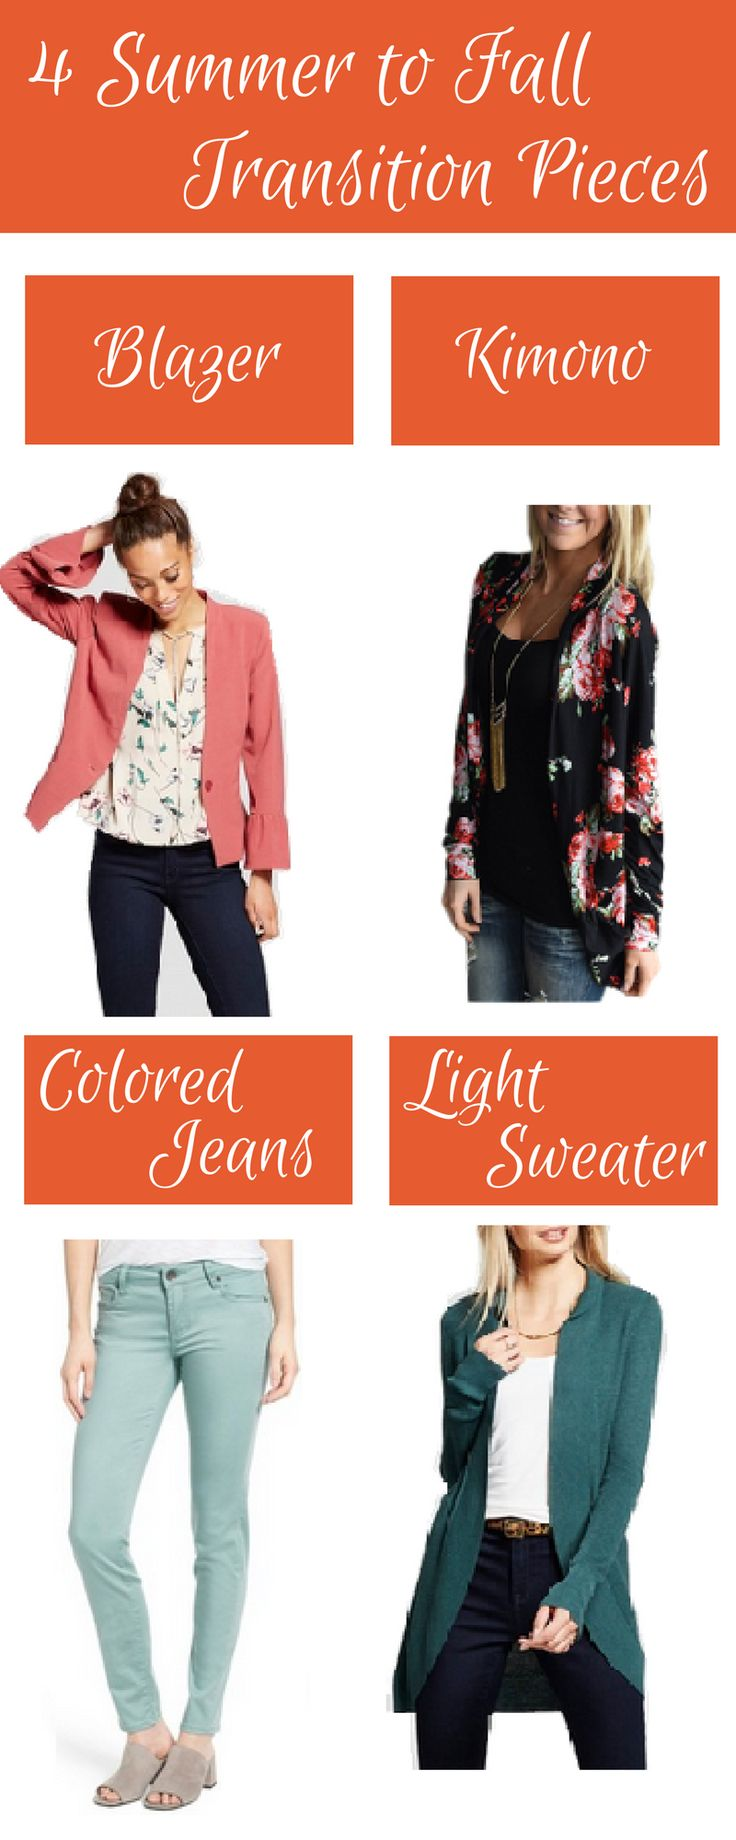 The weather is bipolar from summer to fall, here is my list of 4 must have transition pieces for this season.